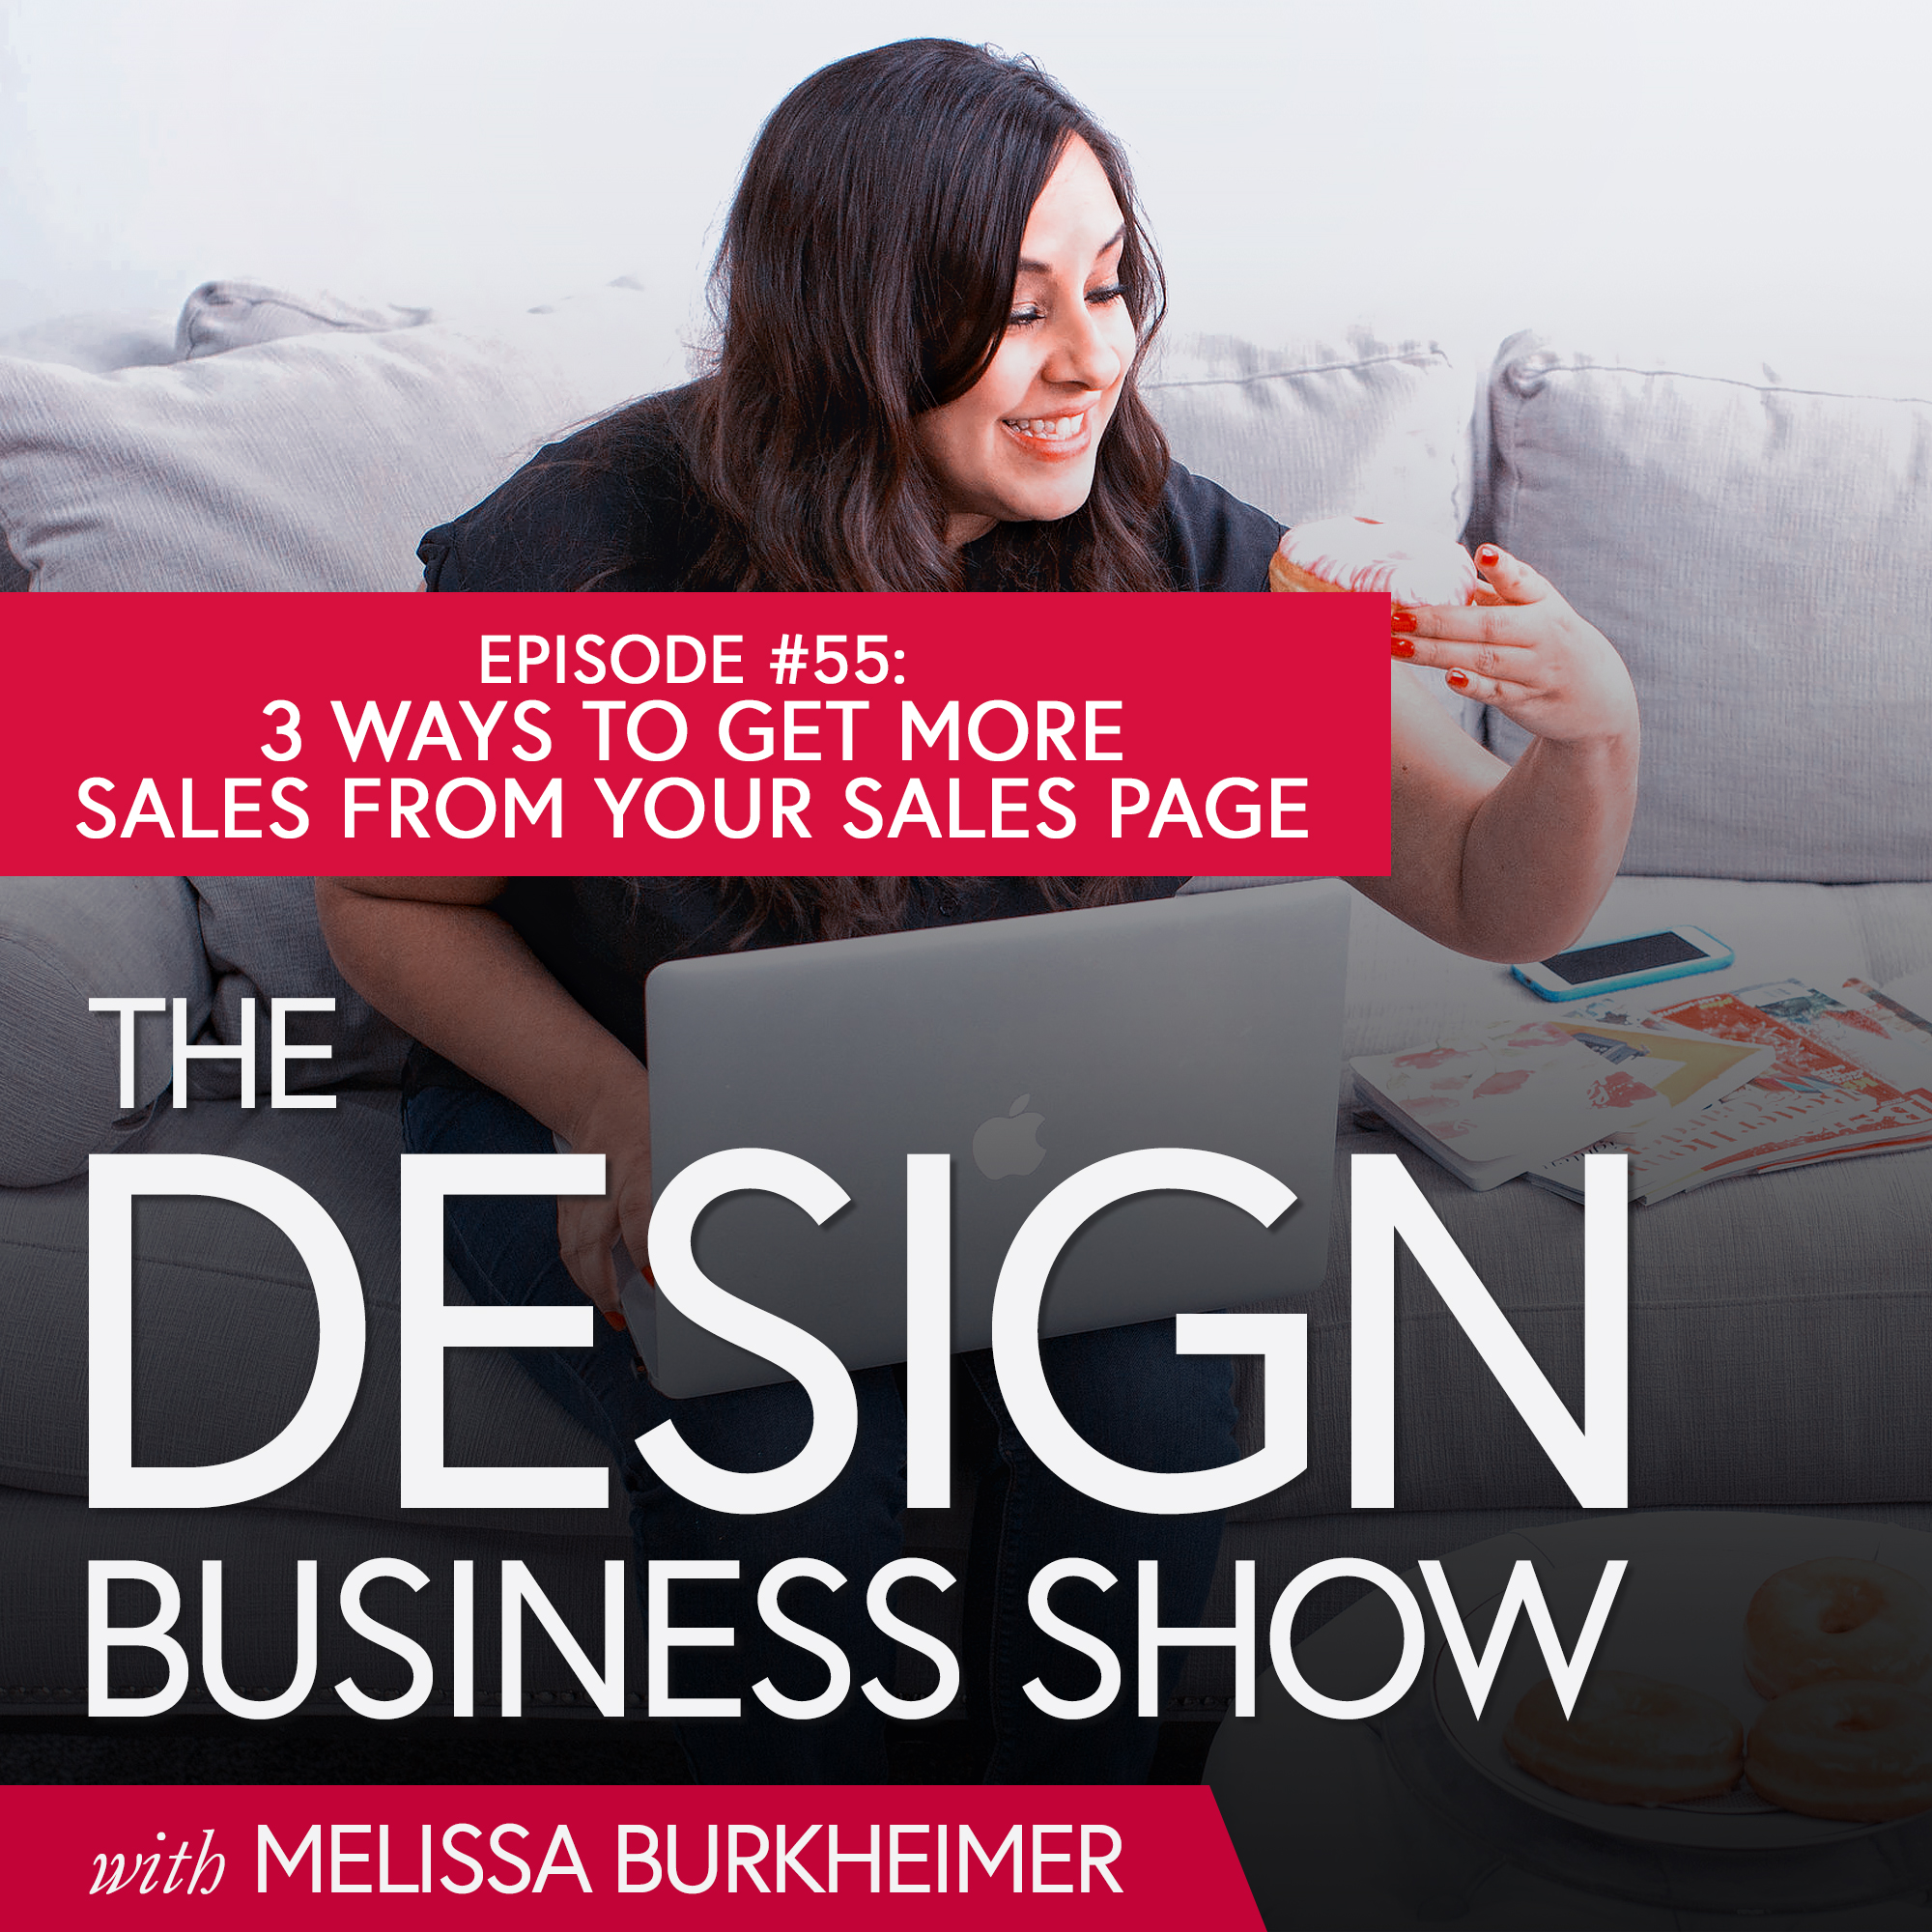 Check out episode 55 of The Design Business Show to get a business update from me and learn 3 ways to get more sales using your sales page.